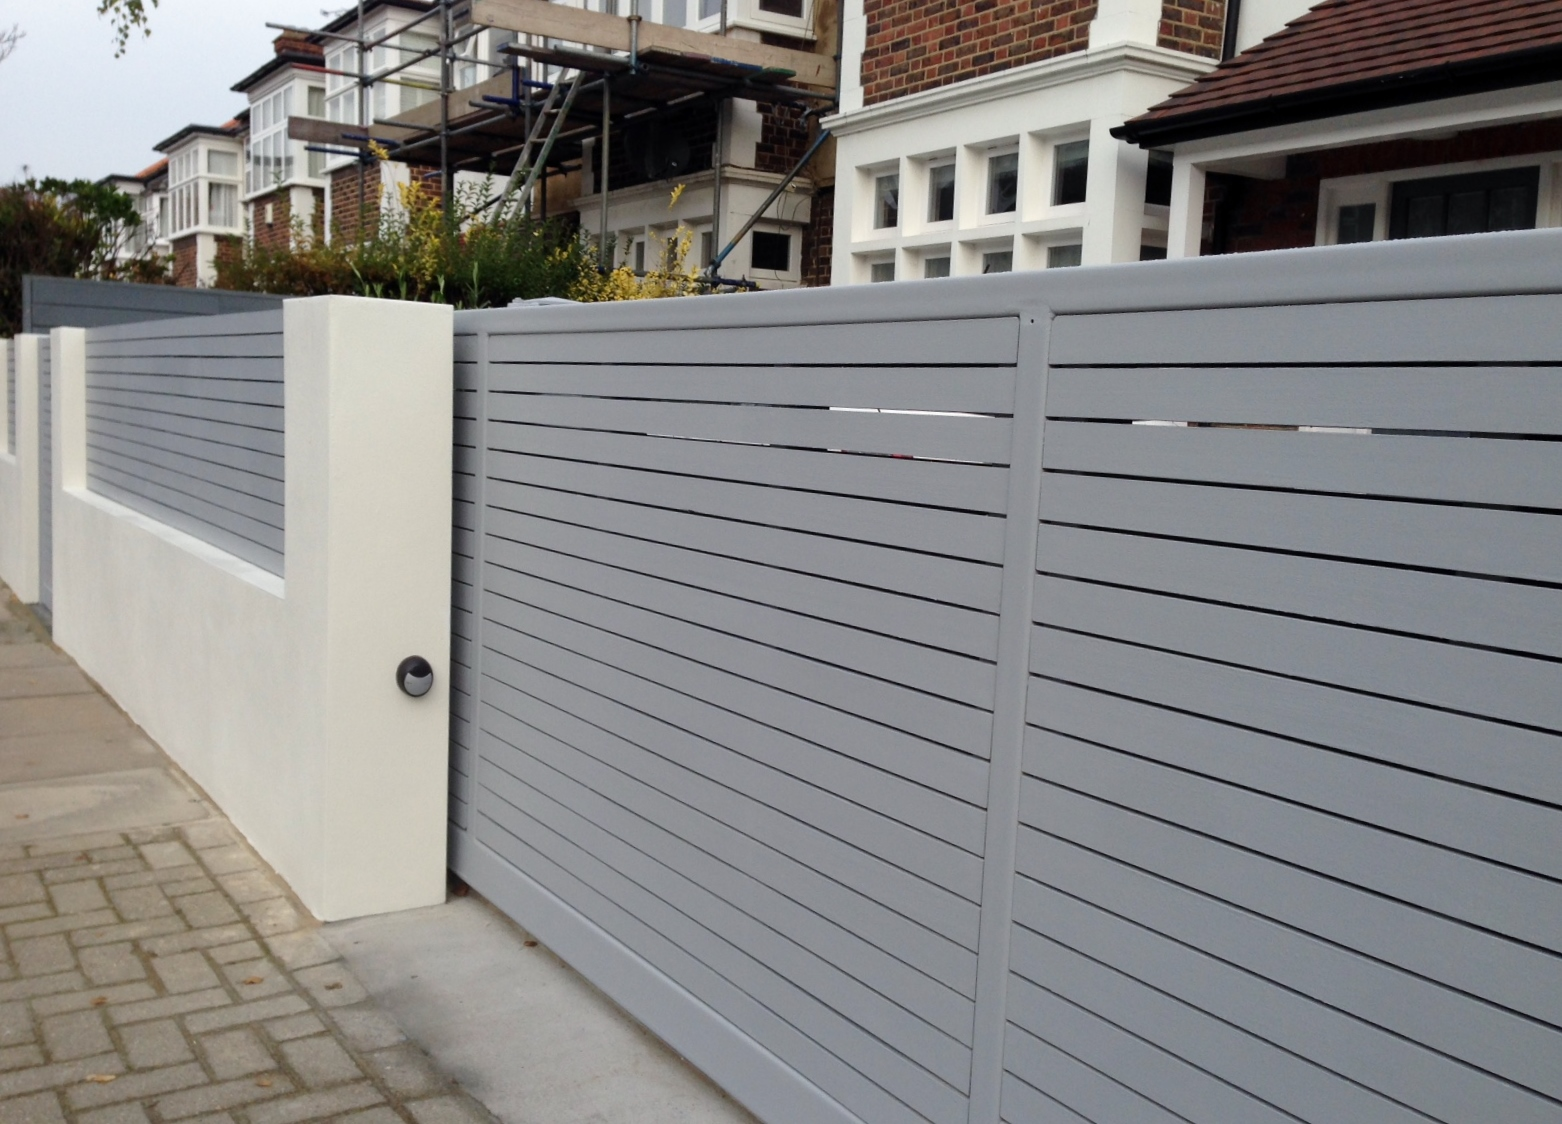 front boundary wall screen automated electronic gate installation grey wooden fence bike store modern garden design balham clapham london (11)